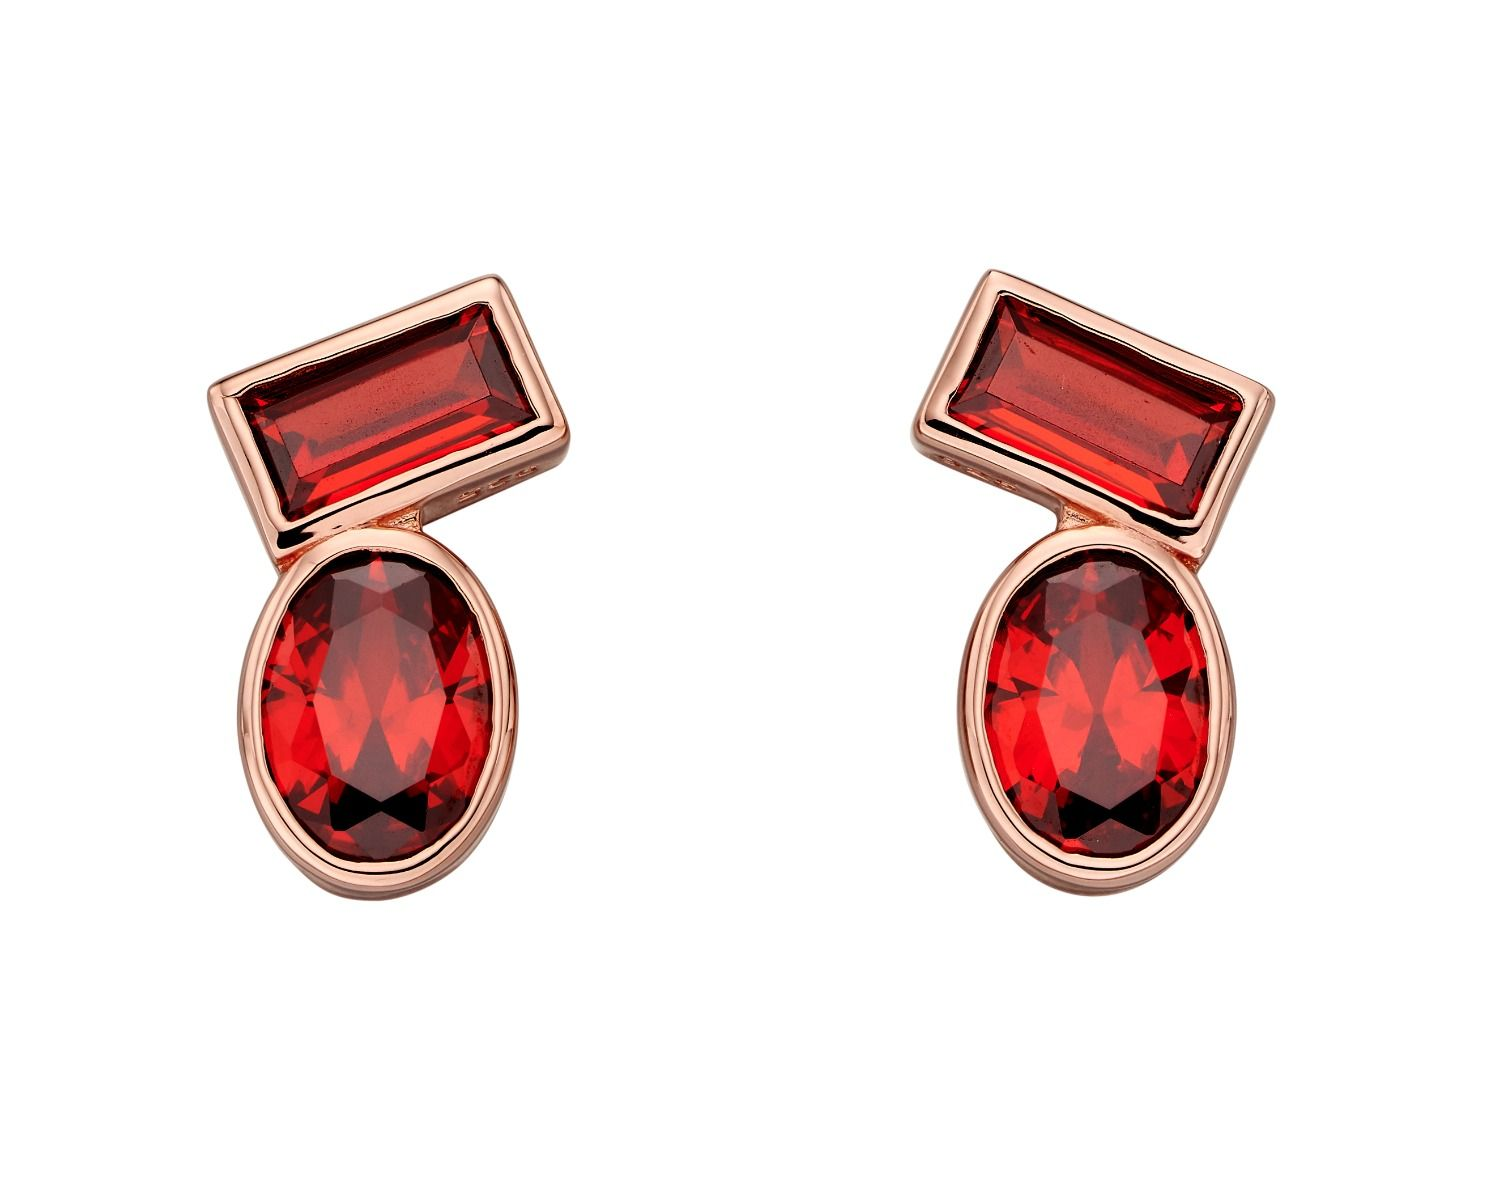 Fiorelli Silver Womens 925 Sterling Silver Rose Gold Plated Orange Cubic Zirconia Stud Earrings